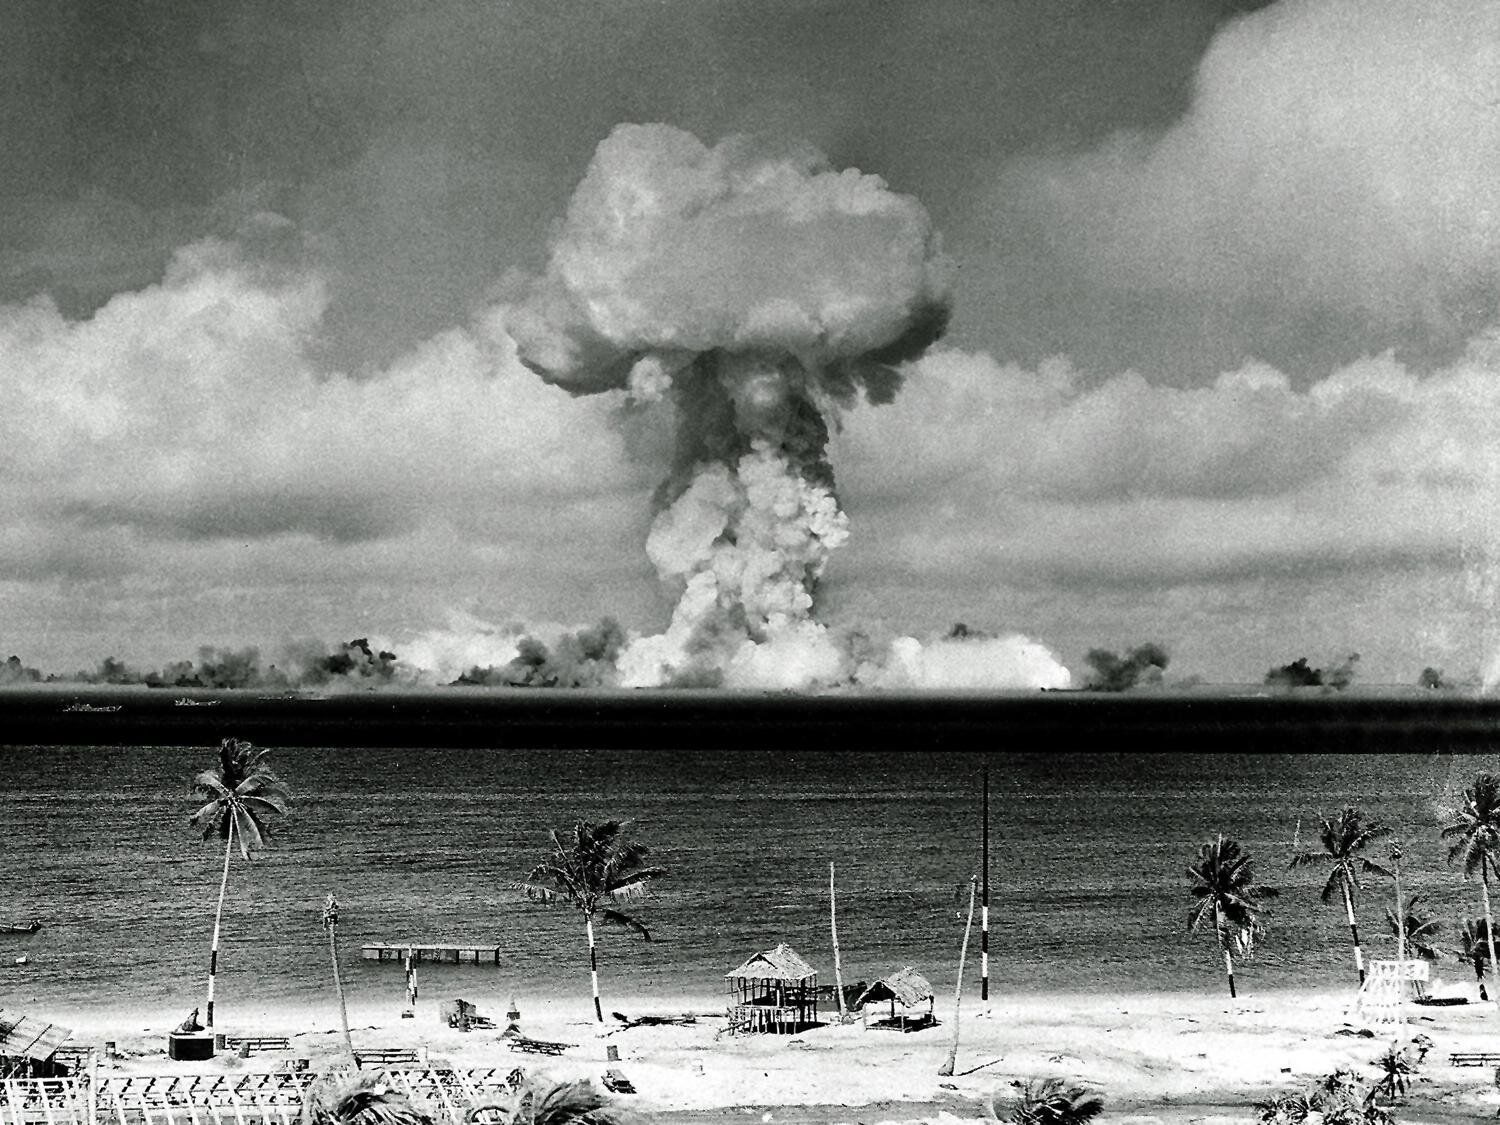 Mushroom cloud from atomic bomb explosion rises in Bikini lagoon, Marshall Islands, B&W photo on black